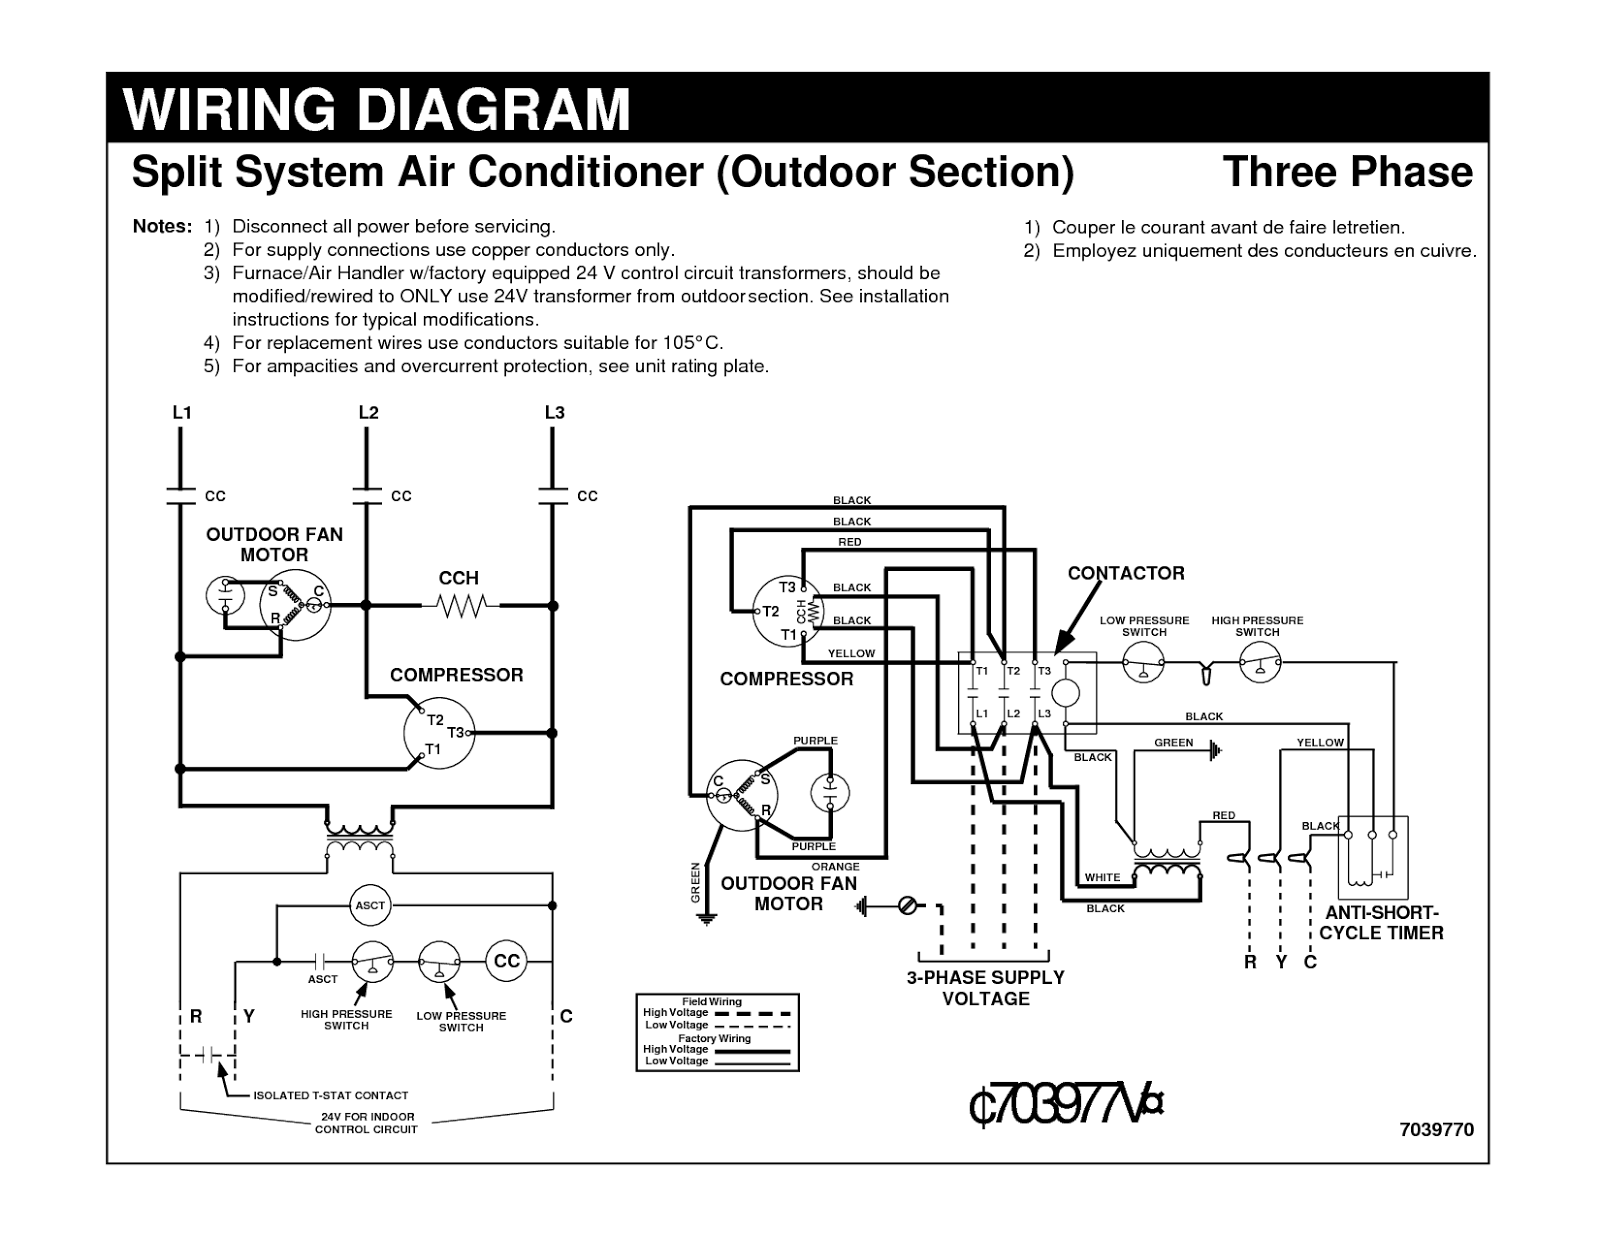 wiring+diagram+in+the+user+manual electrical wiring diagrams for air conditioning systems part one electrical wiring diagrams at bayanpartner.co